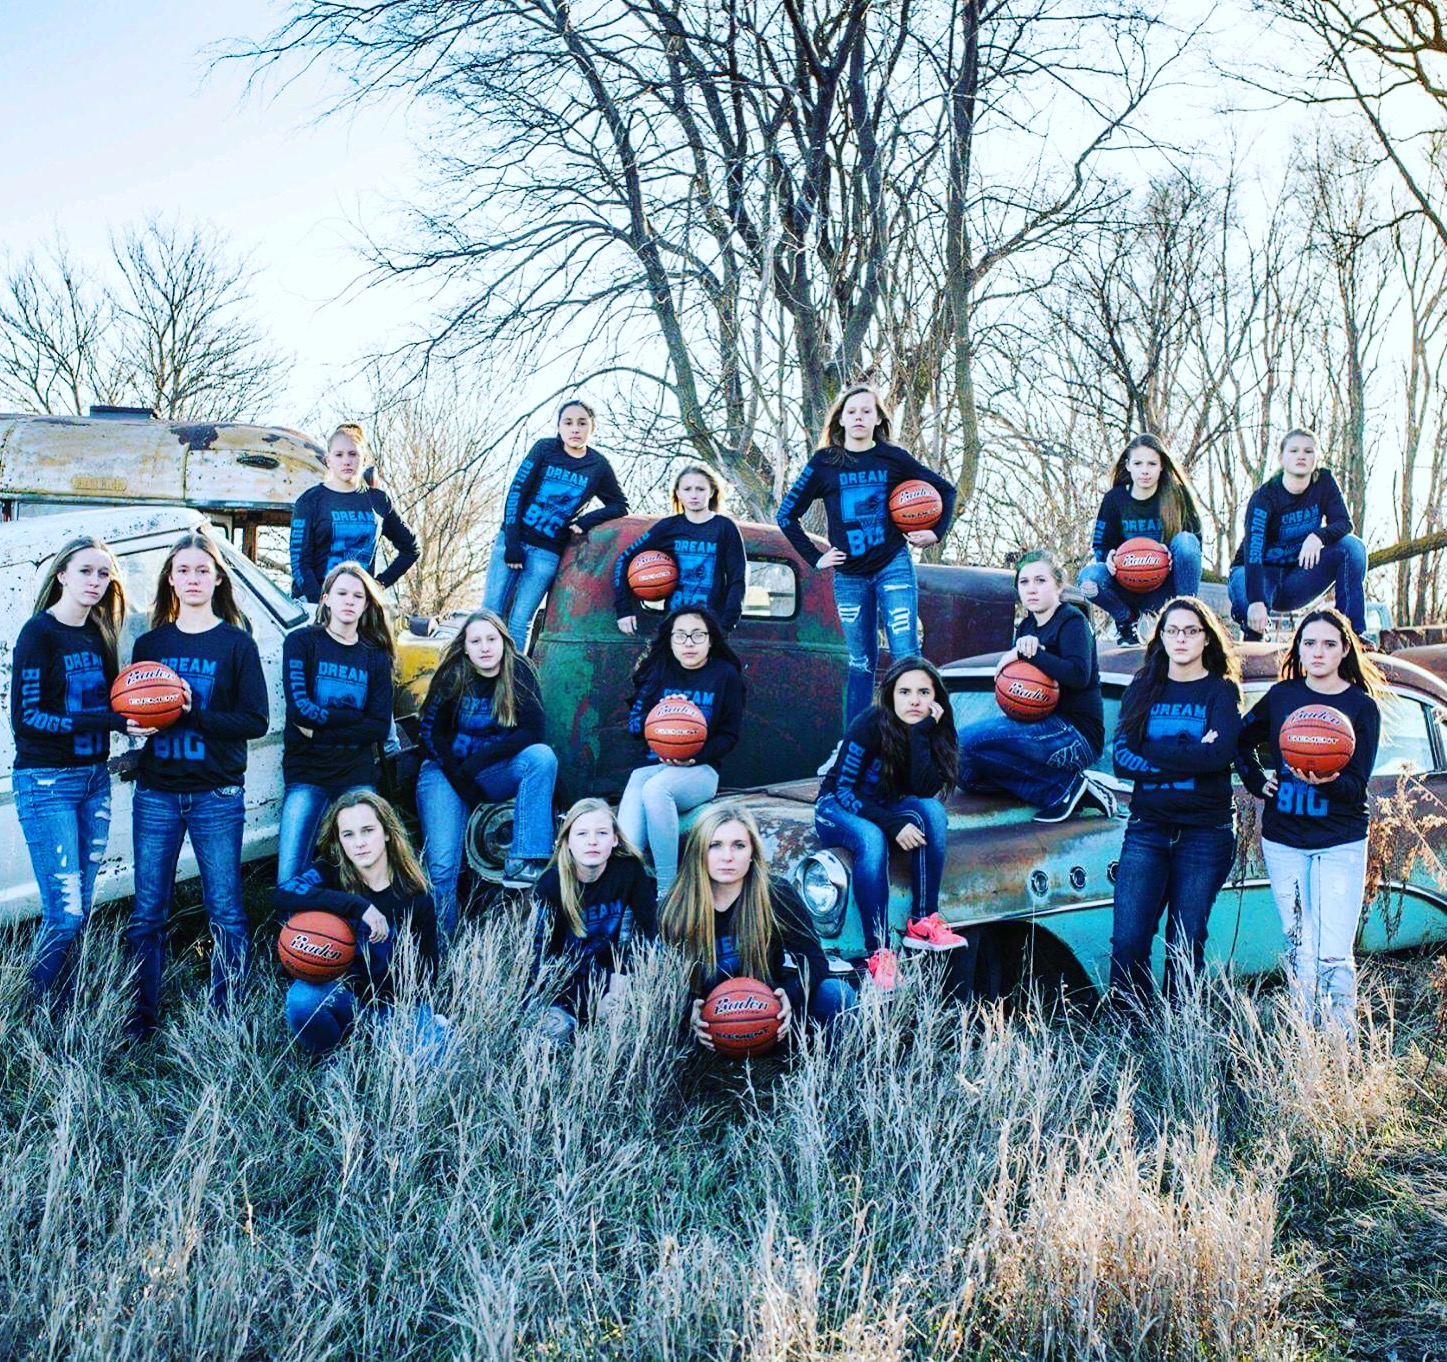 The Shelton Jr. High girl's basketball team wore our Dream Big shirts during their season! Thanks so much to the Bulldogs for the support! Congrats on a great season!